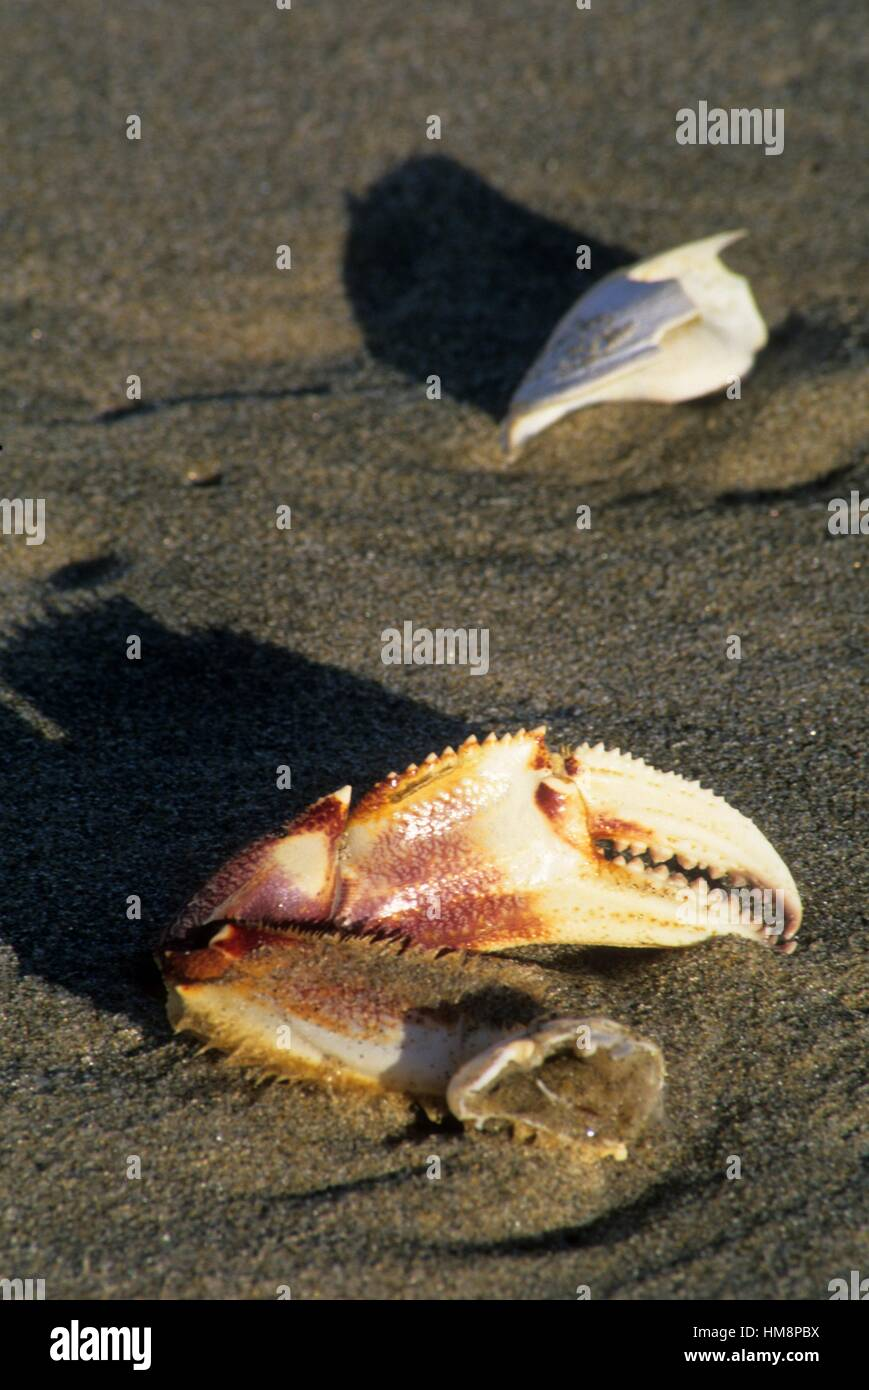 Dungeness crab (Cancer magister) claw, Cape Lookout State Park, Oregon. - Stock Image